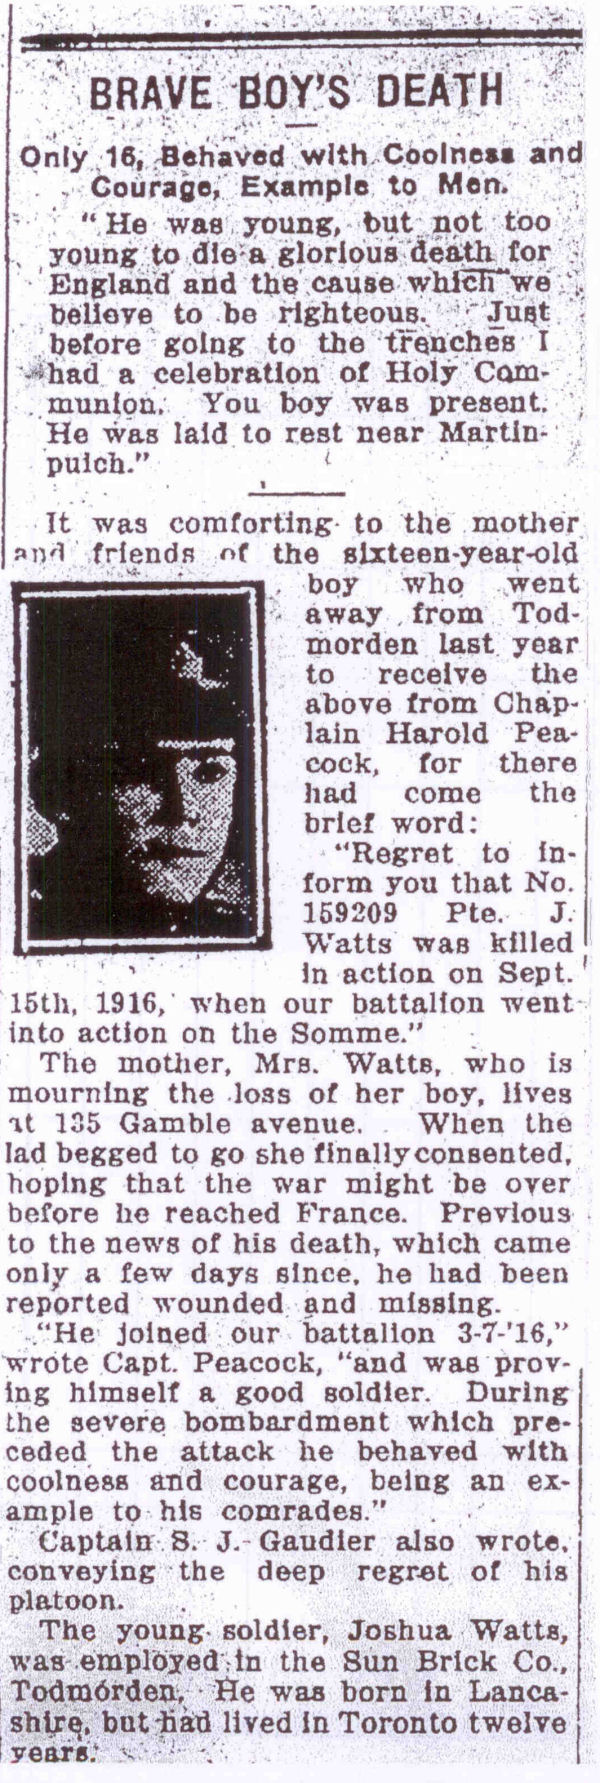 Newspaper clipping – Brave Boy's Death. Source: CVWM